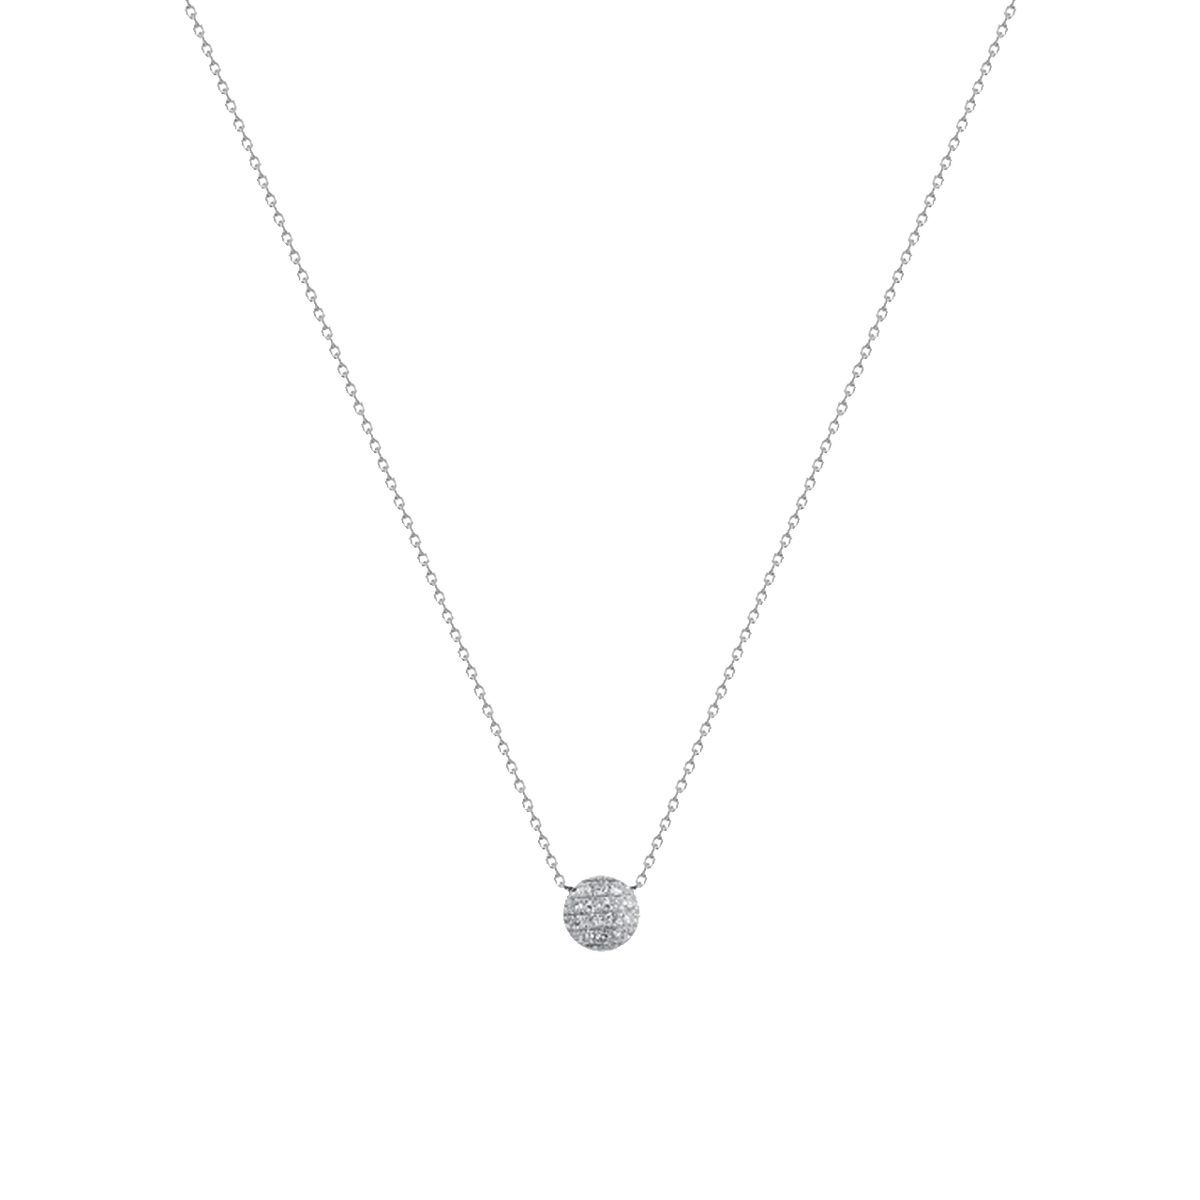 Lauren Joy Mini Disc Necklace